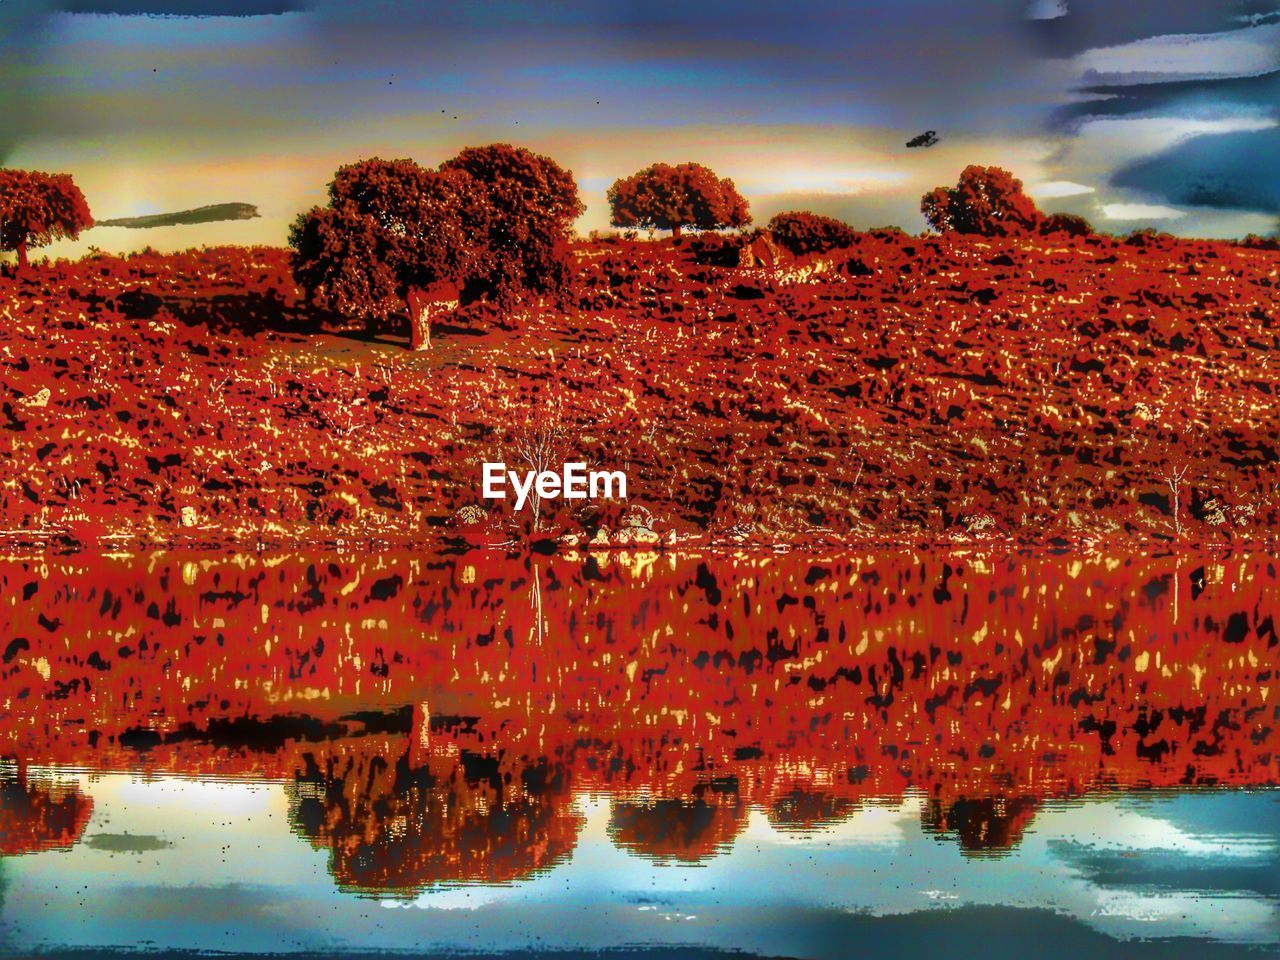 sky, reflection, red, cloud - sky, no people, nature, water, beauty in nature, outdoors, scenics, day, tree, close-up